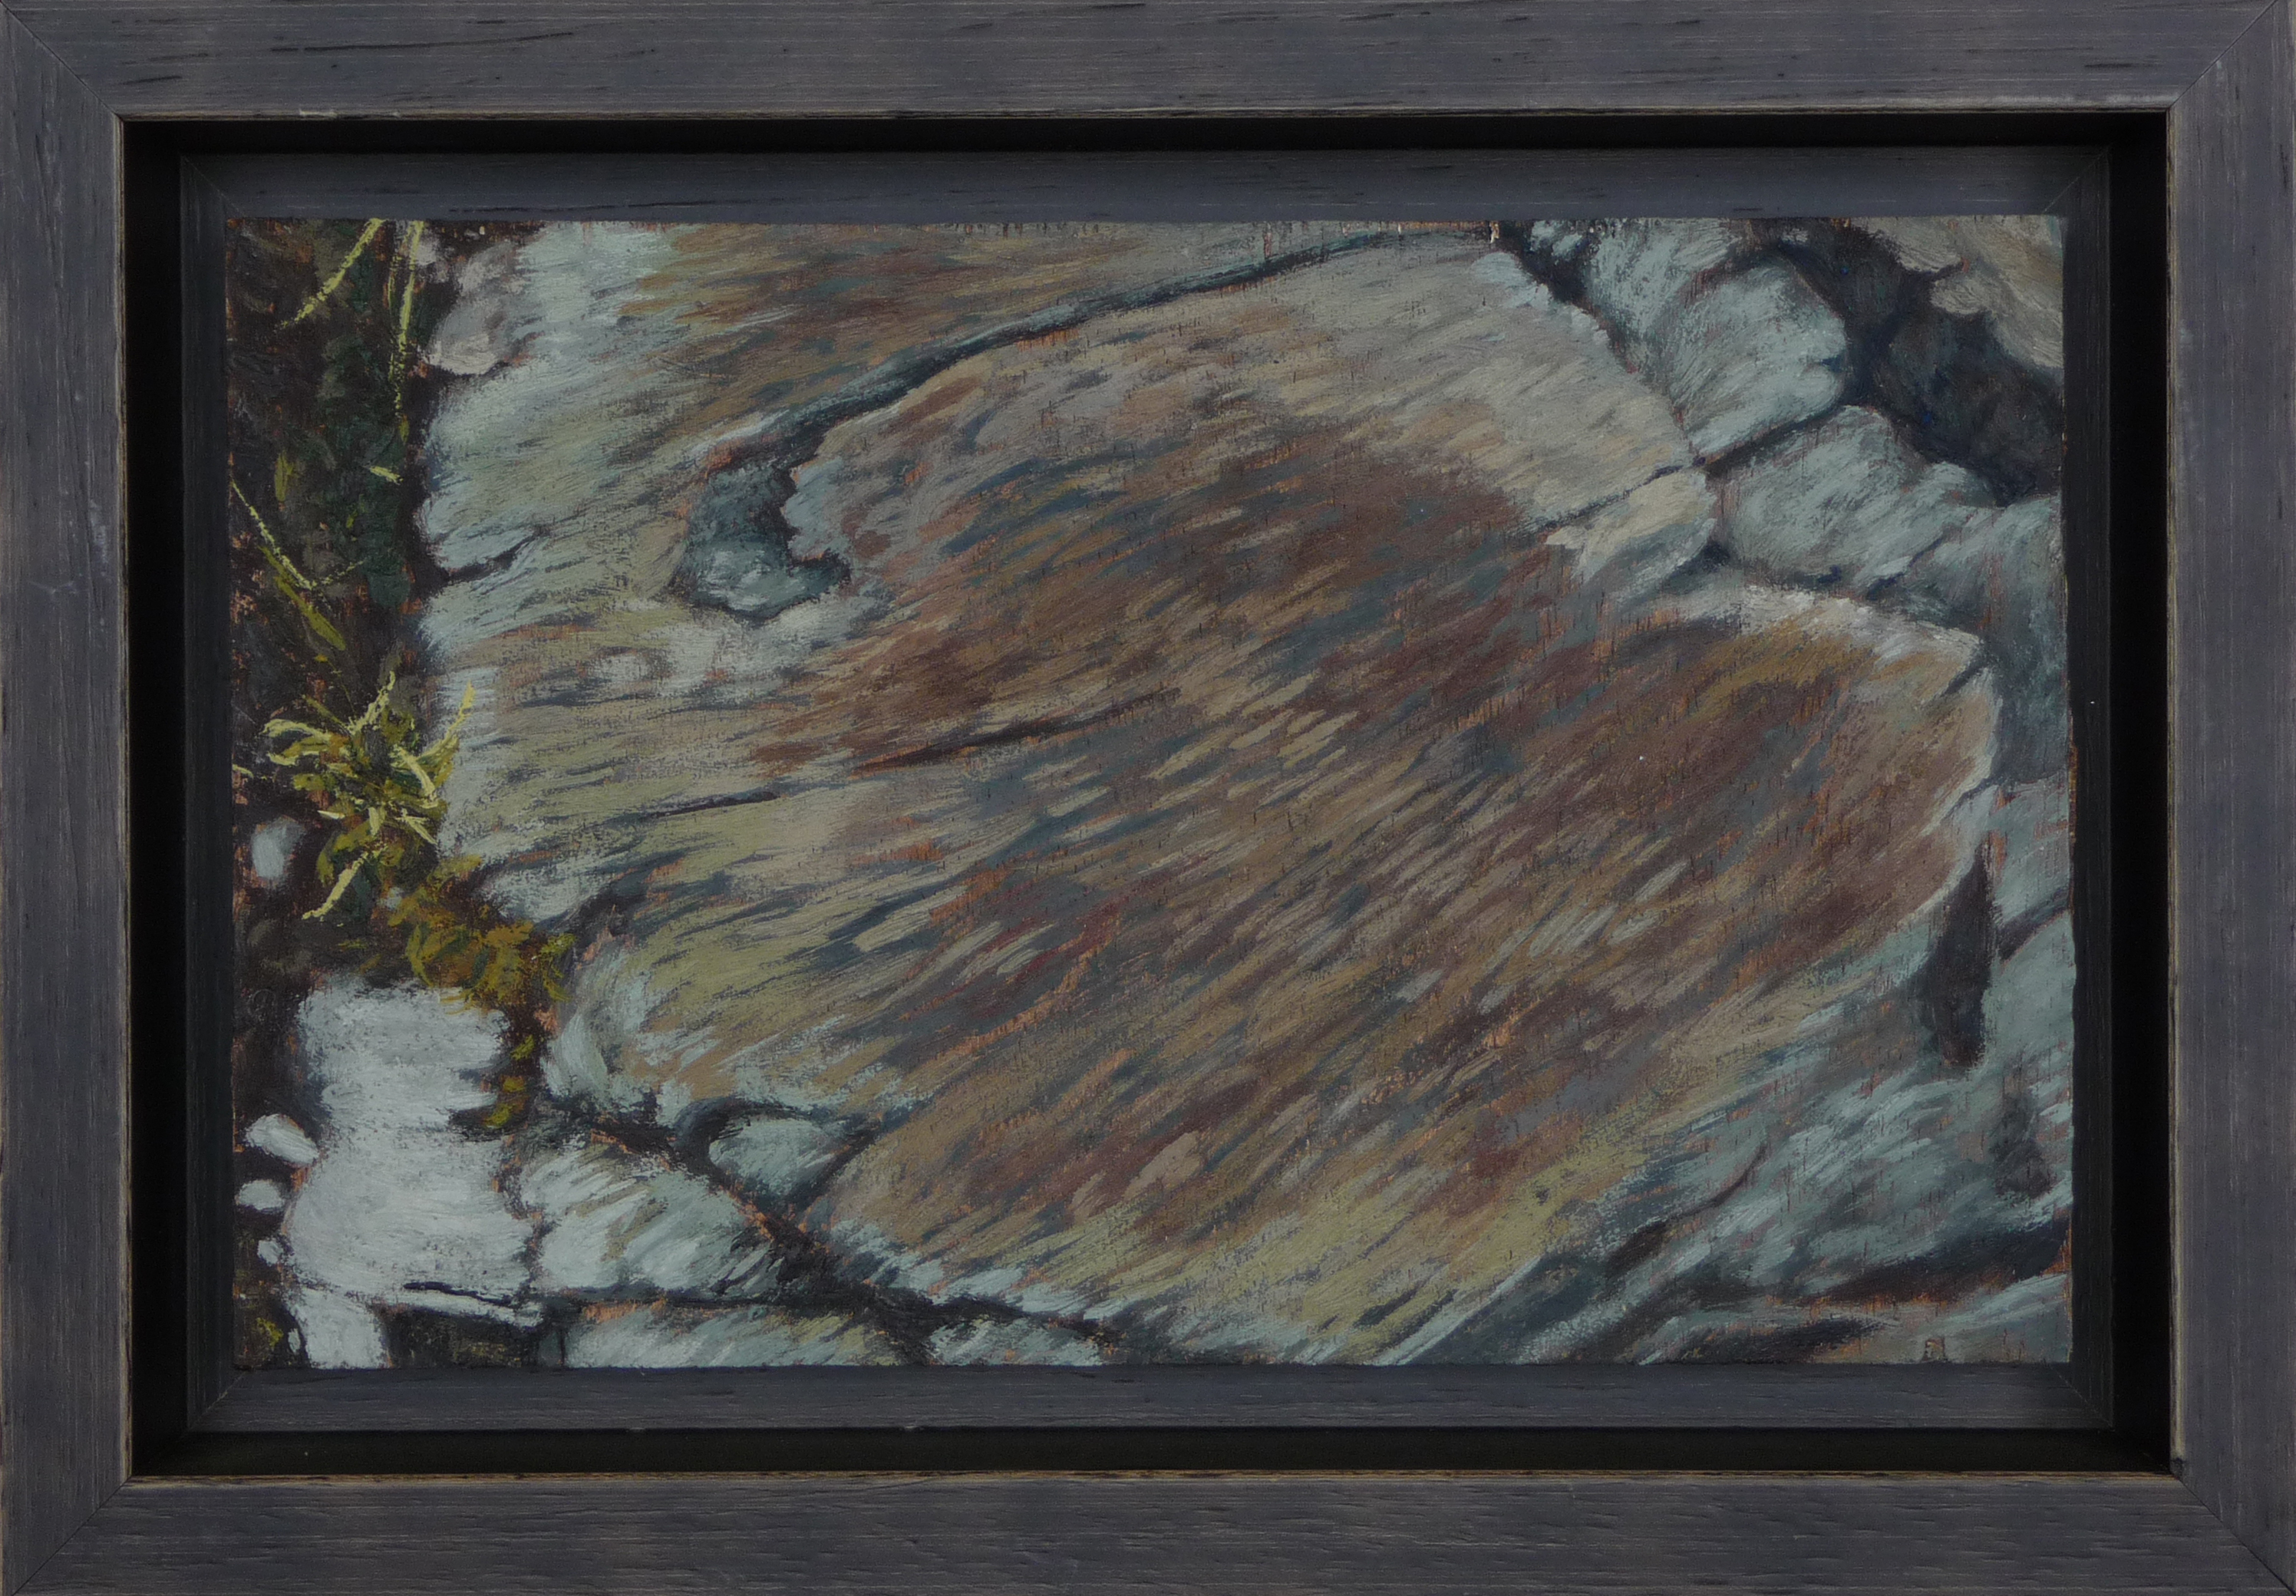 <p><strong>Stone 325 Euro</strong><br />Encaustic on wood, 22,5 x 14 cm<br />[ Frame included - 19 x 27 cm ]<br /><!-- [if gte mso 9]><xml>  <o:OfficeDocumentSettings>   <o:AllowPNG/>  </o:OfficeDocumentSettings> </xml><![endif]--></p>